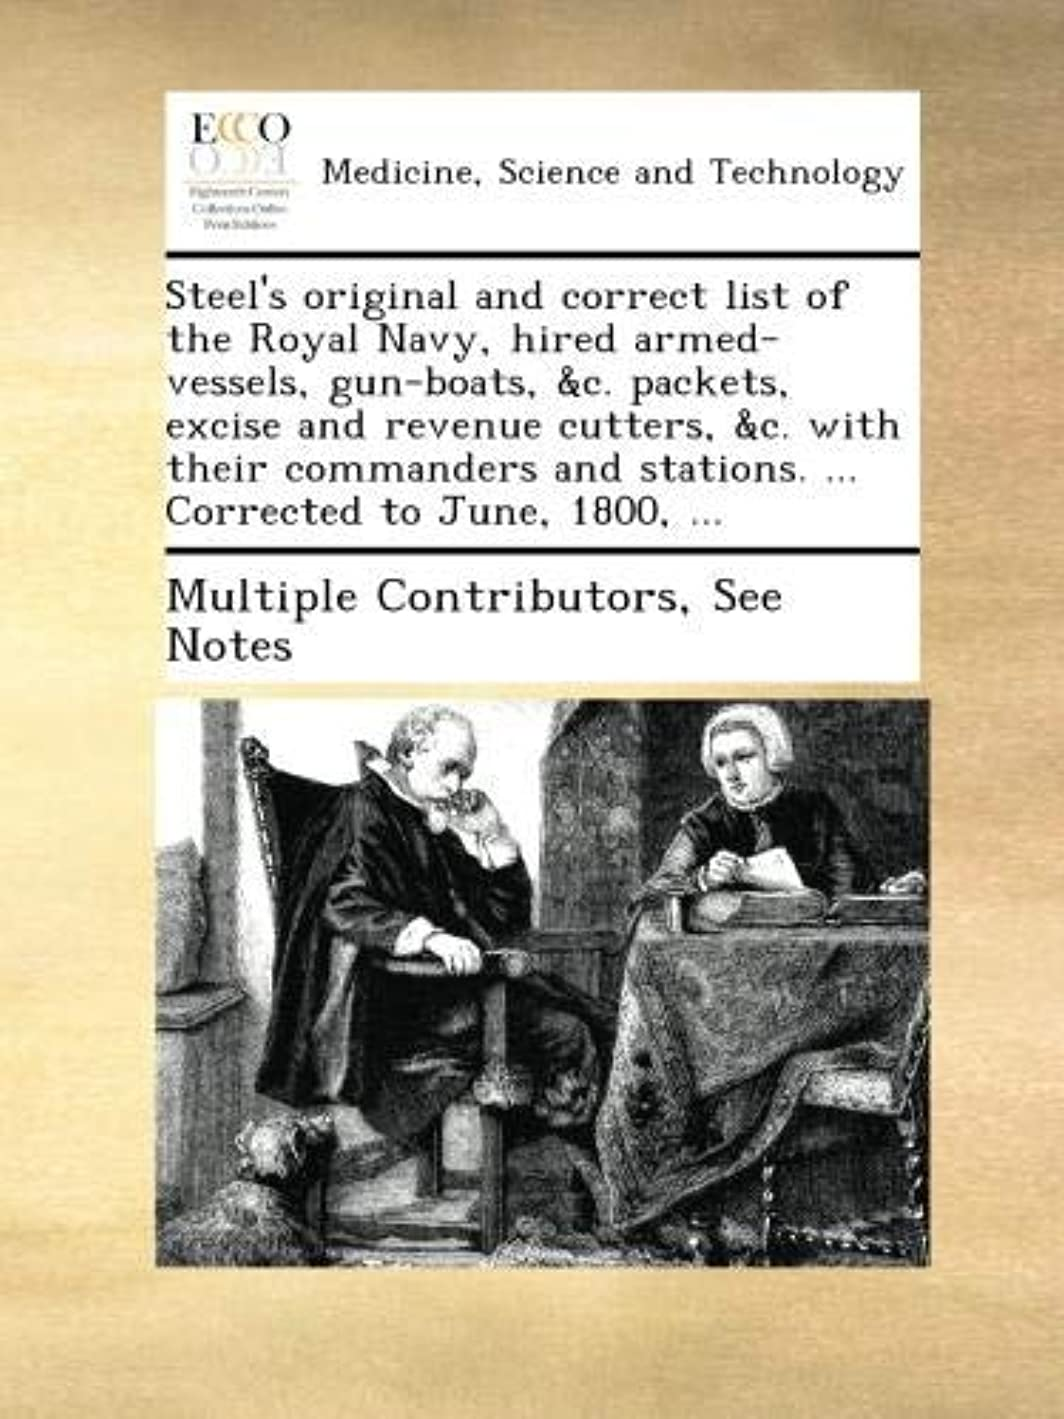 シャッター理想的驚Steel's original and correct list of the Royal Navy, hired armed-vessels, gun-boats, &c. packets, excise and revenue cutters, &c. with their commanders and stations. ... Corrected to June, 1800, ...